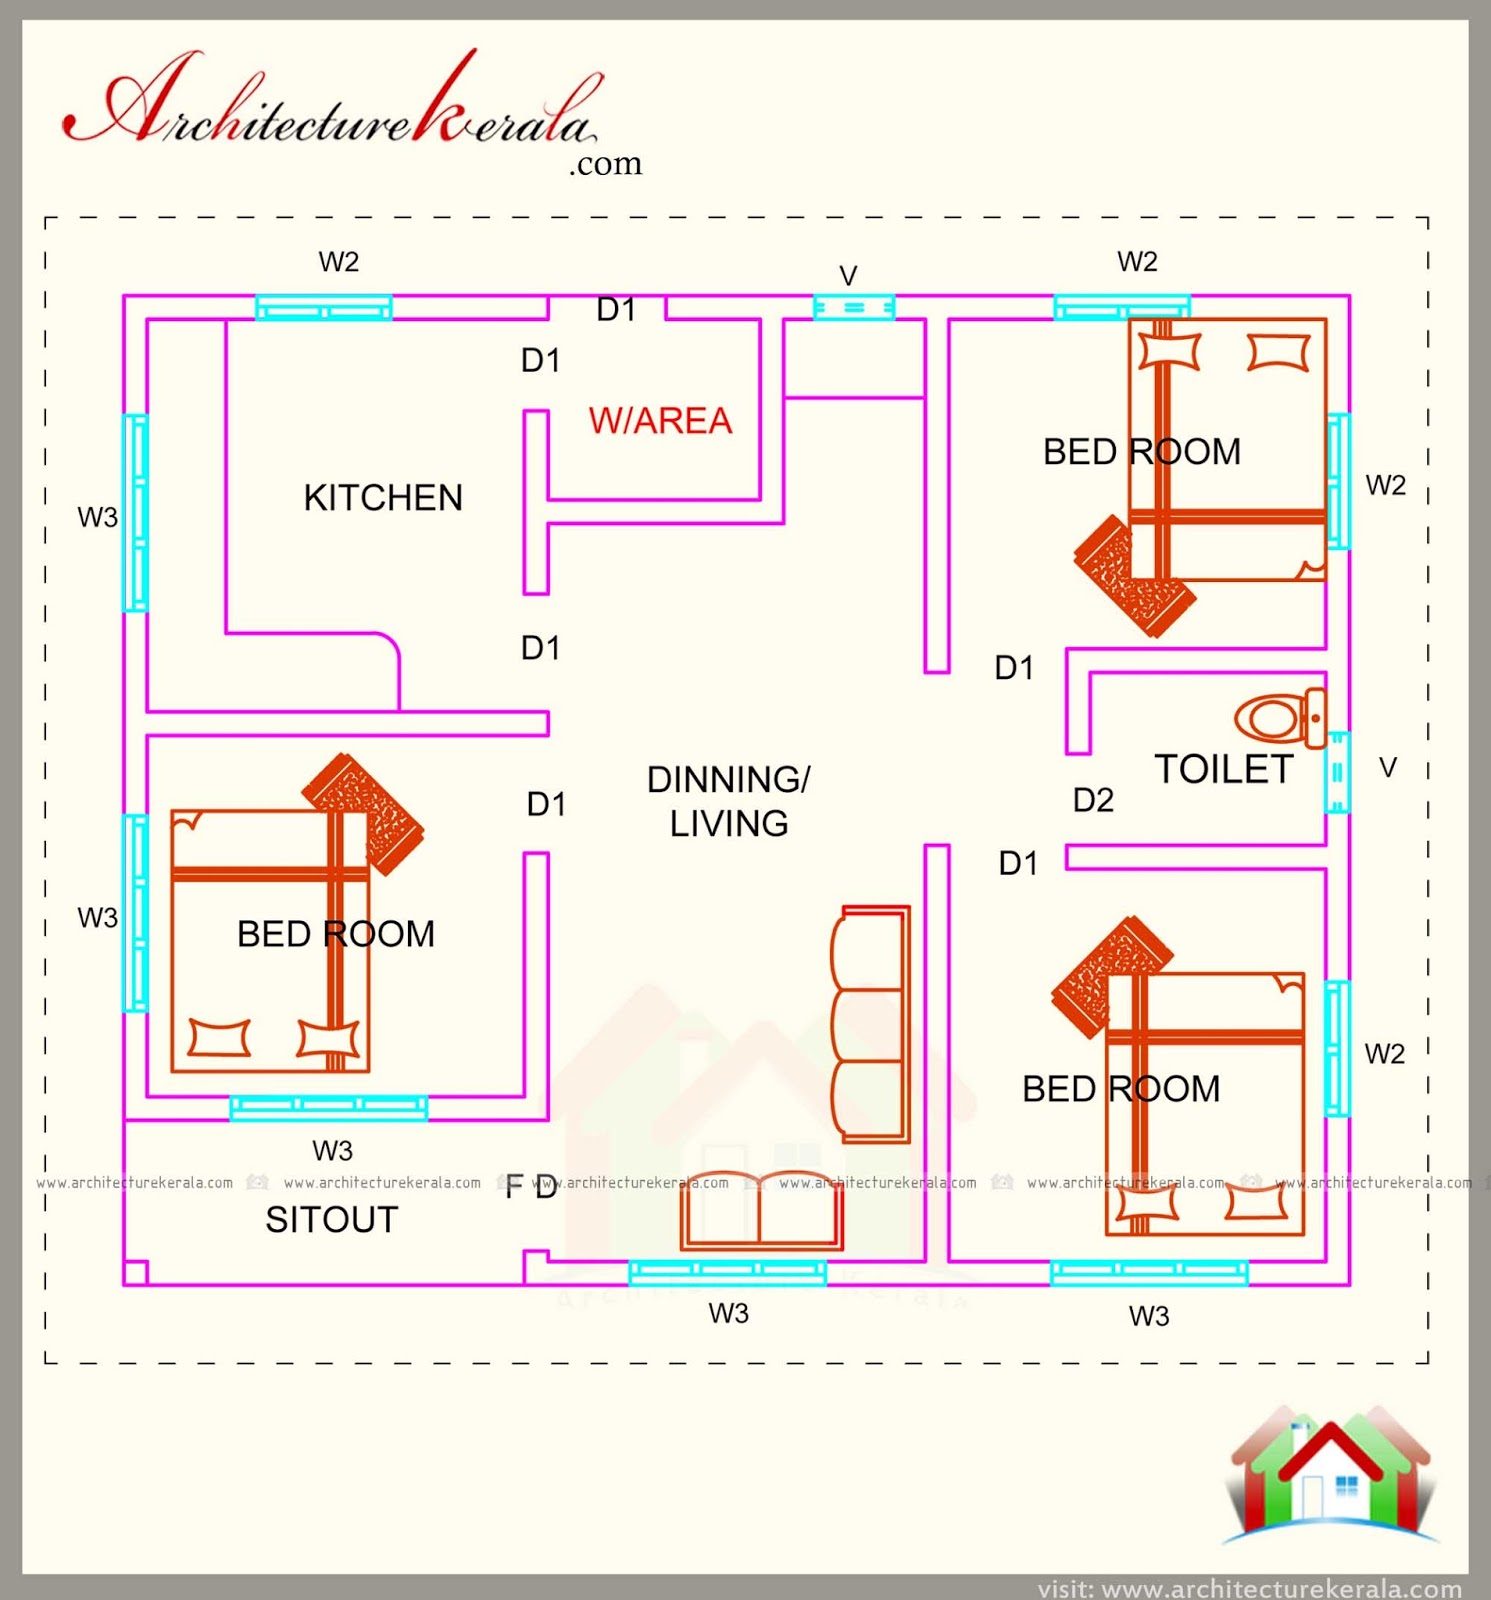 Three bedroom house plan in kerala house design plans for 3 bedroom plan in kerala